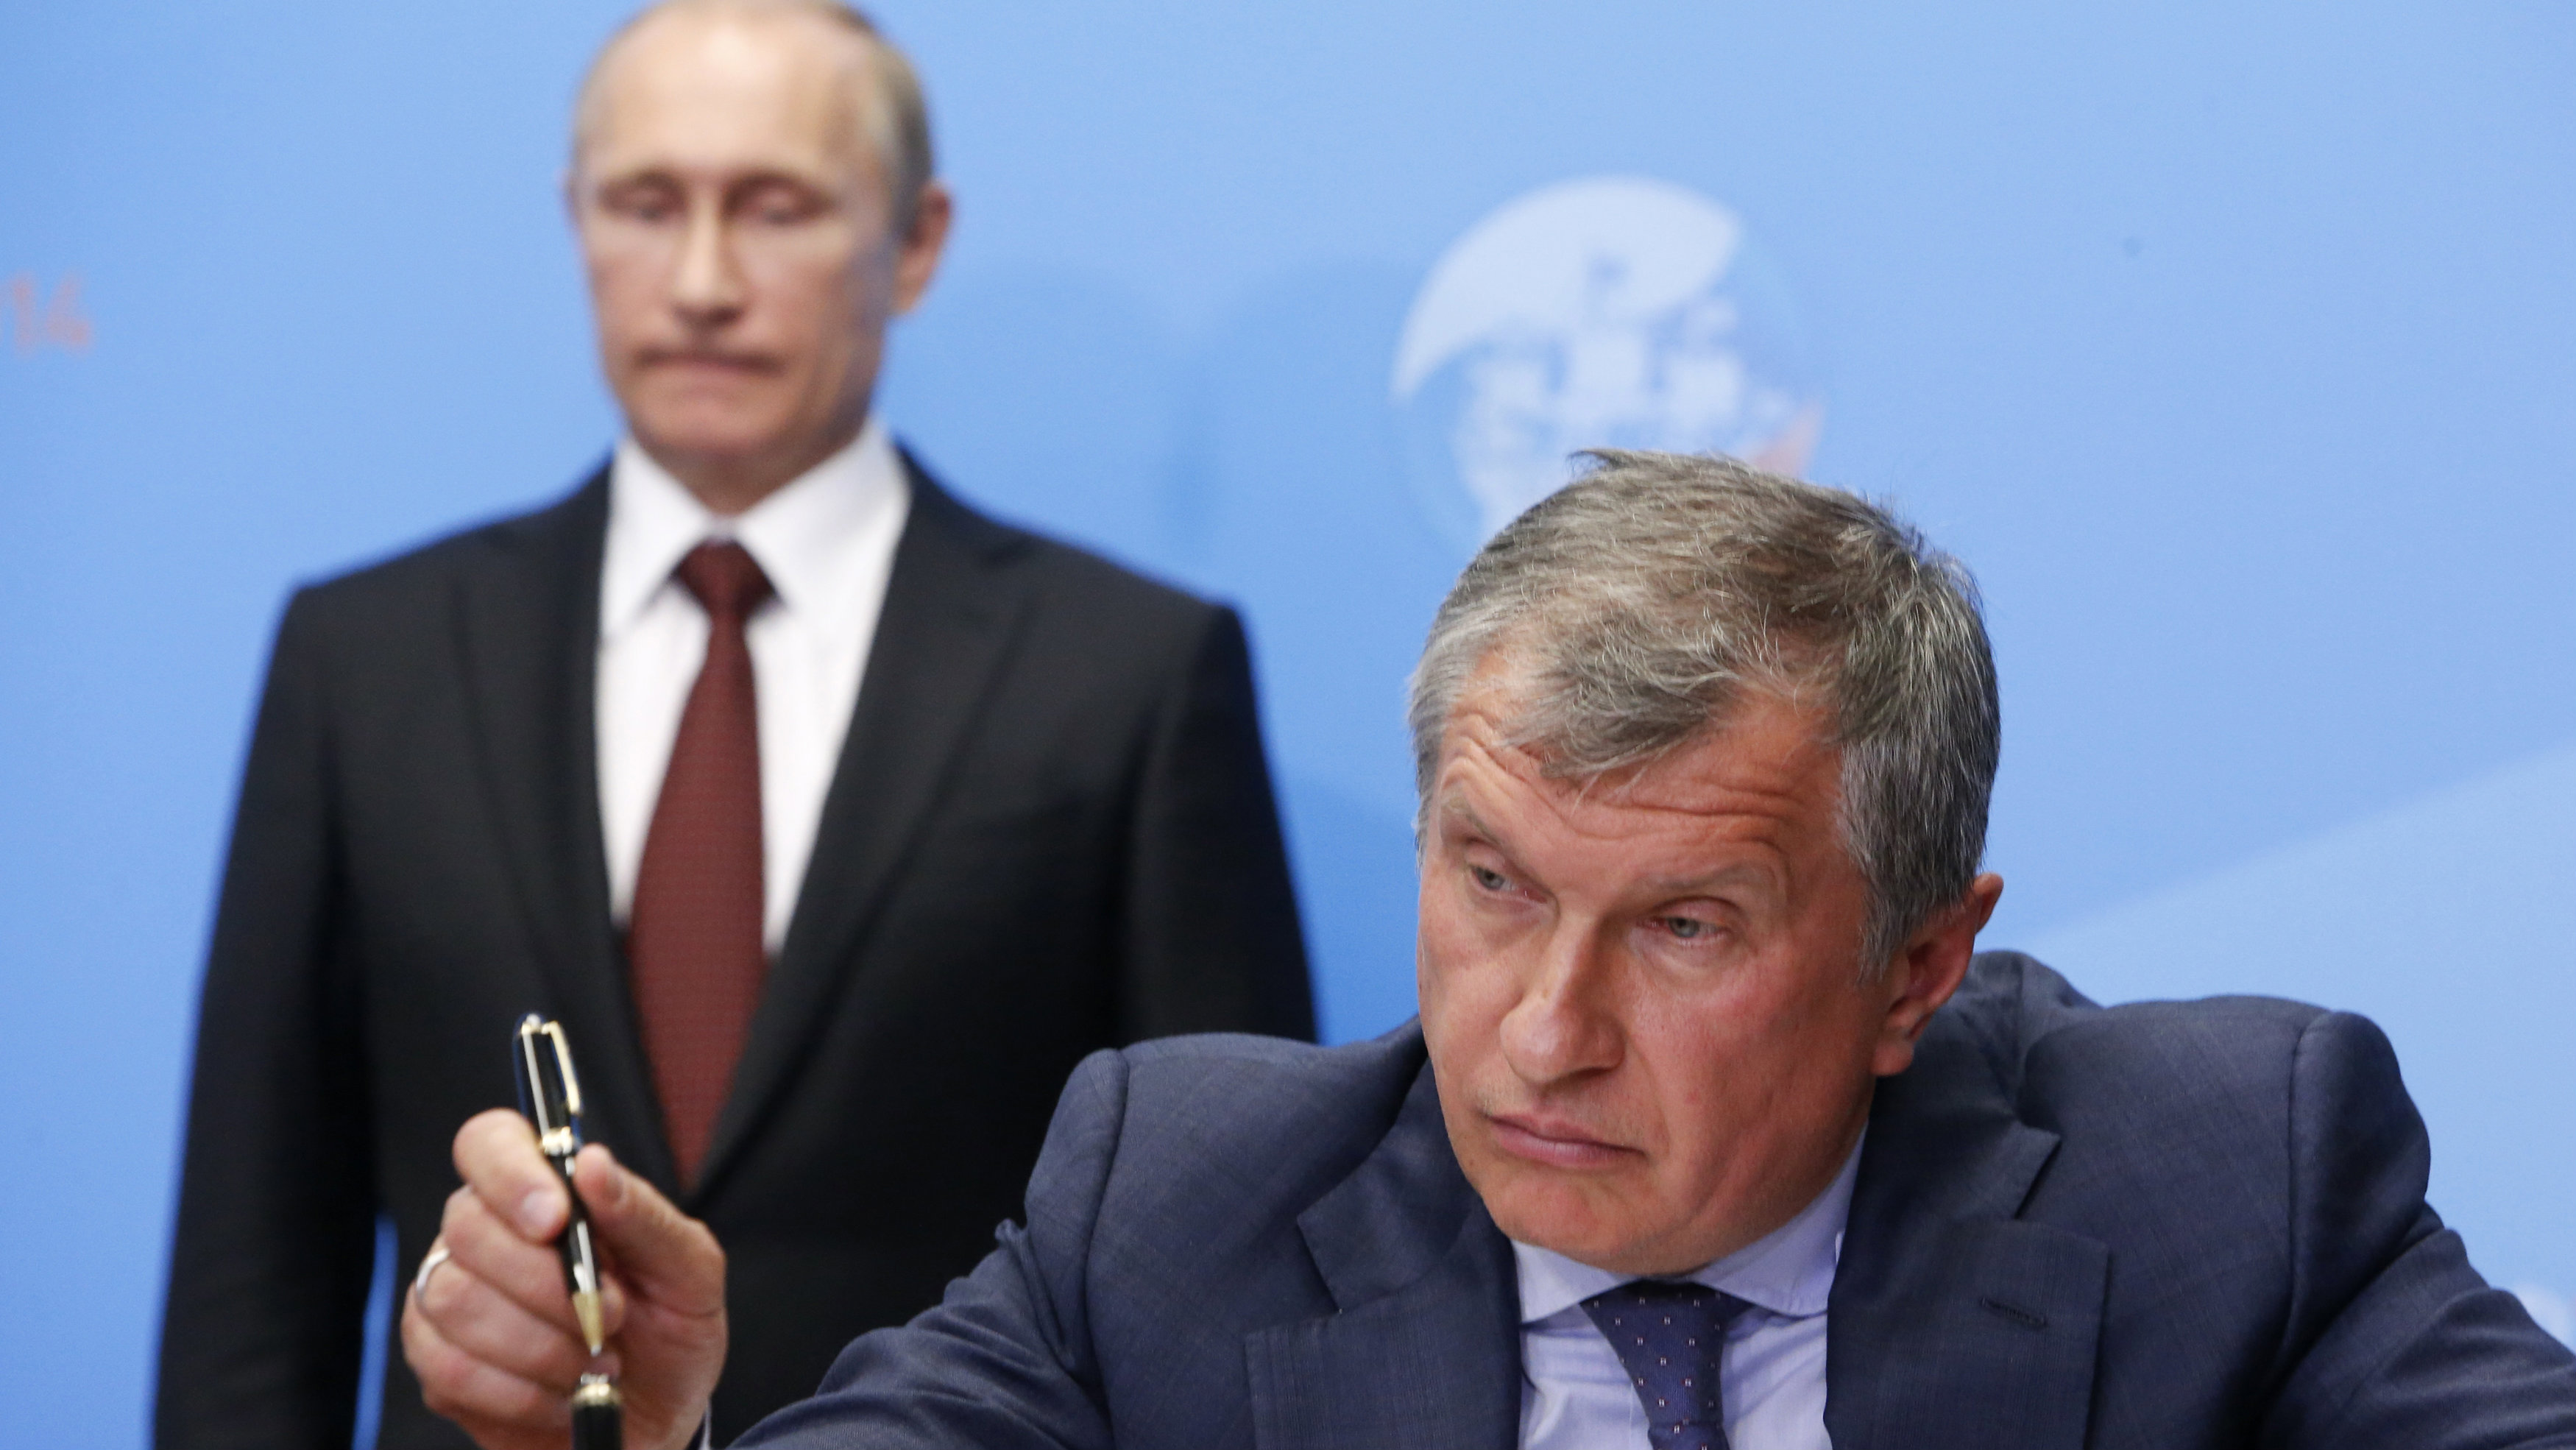 Rosneft CEO Igor Sechin finishes signing a document in St. Petersburg in May 2014.